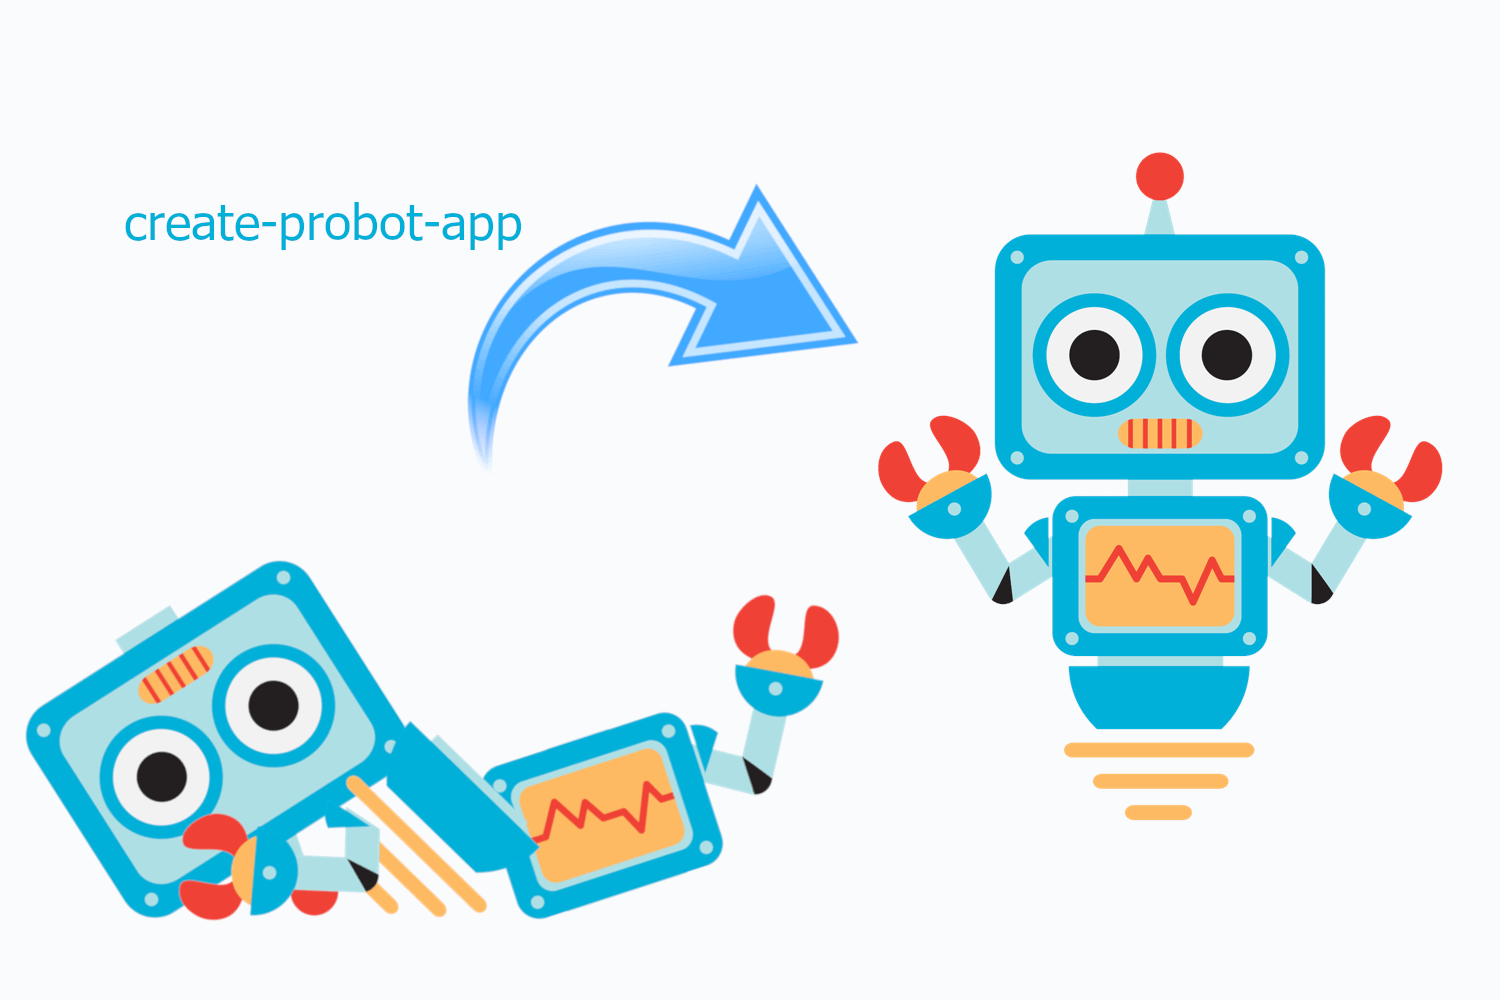 Creating a GitHub app with create-probot-app